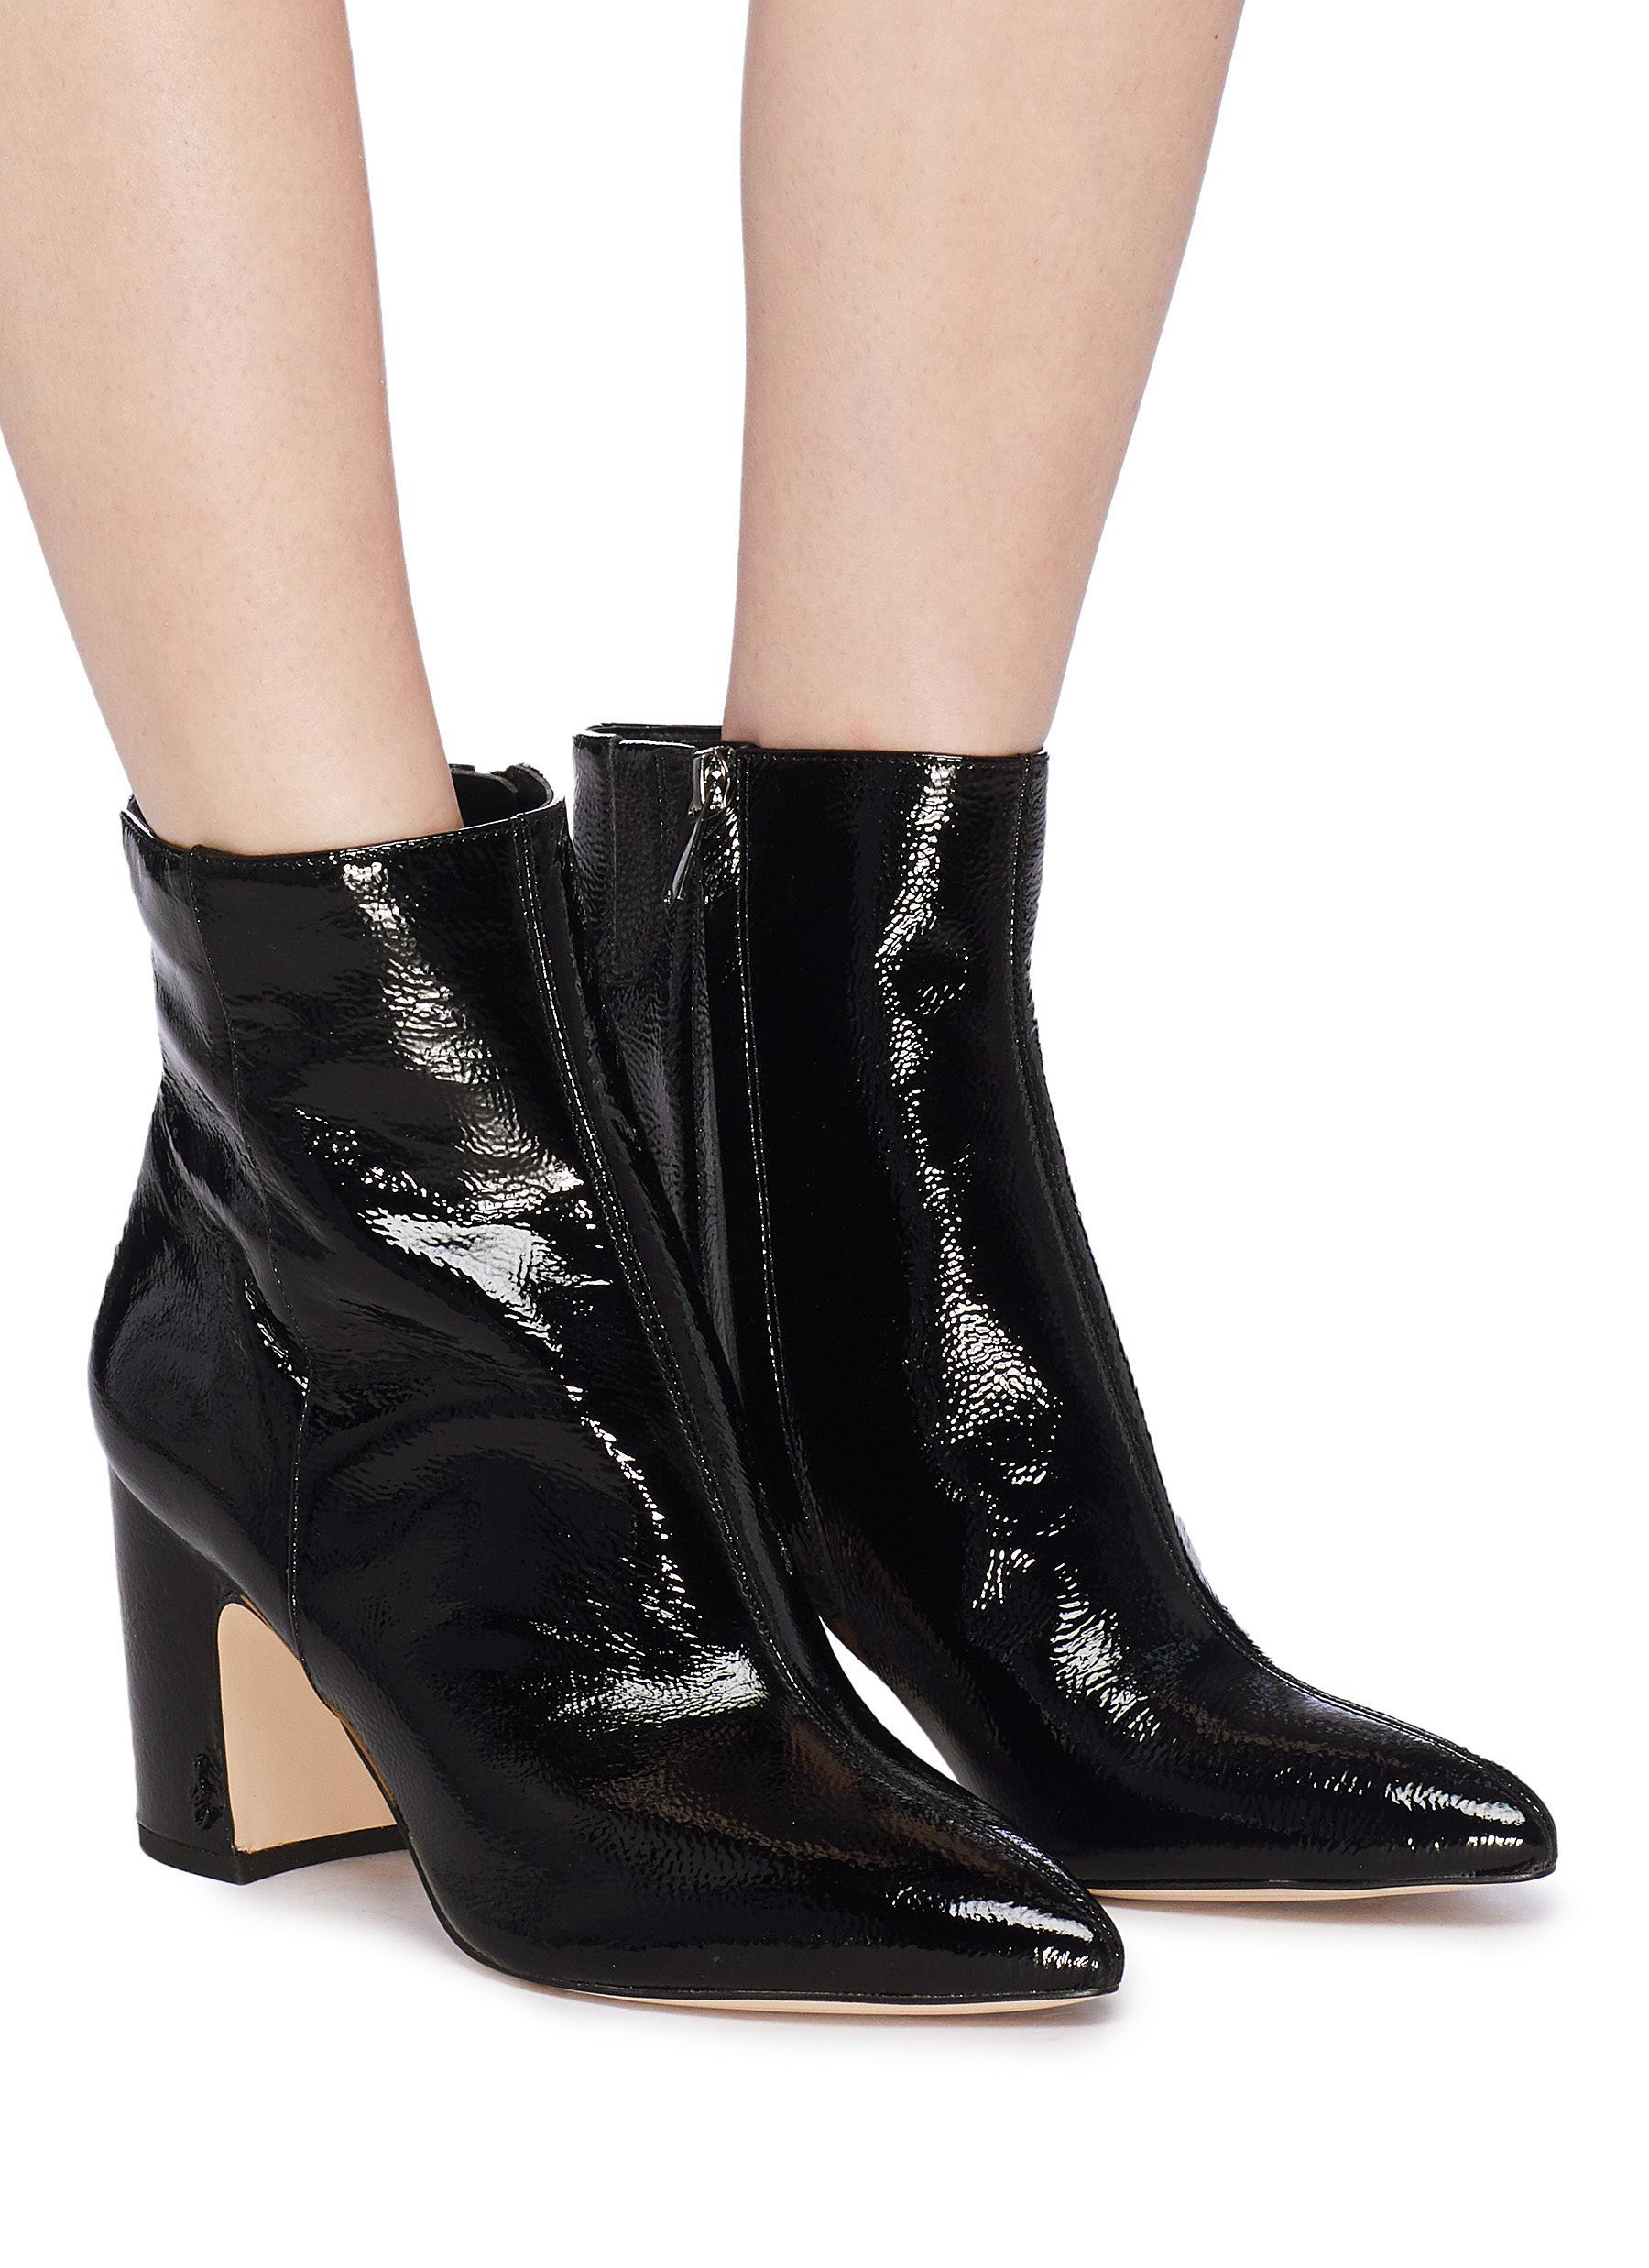 3aa75f77cf05 Sam Edelman  hilty  Crinkled Patent Leather Ankle Boots in Black - Lyst